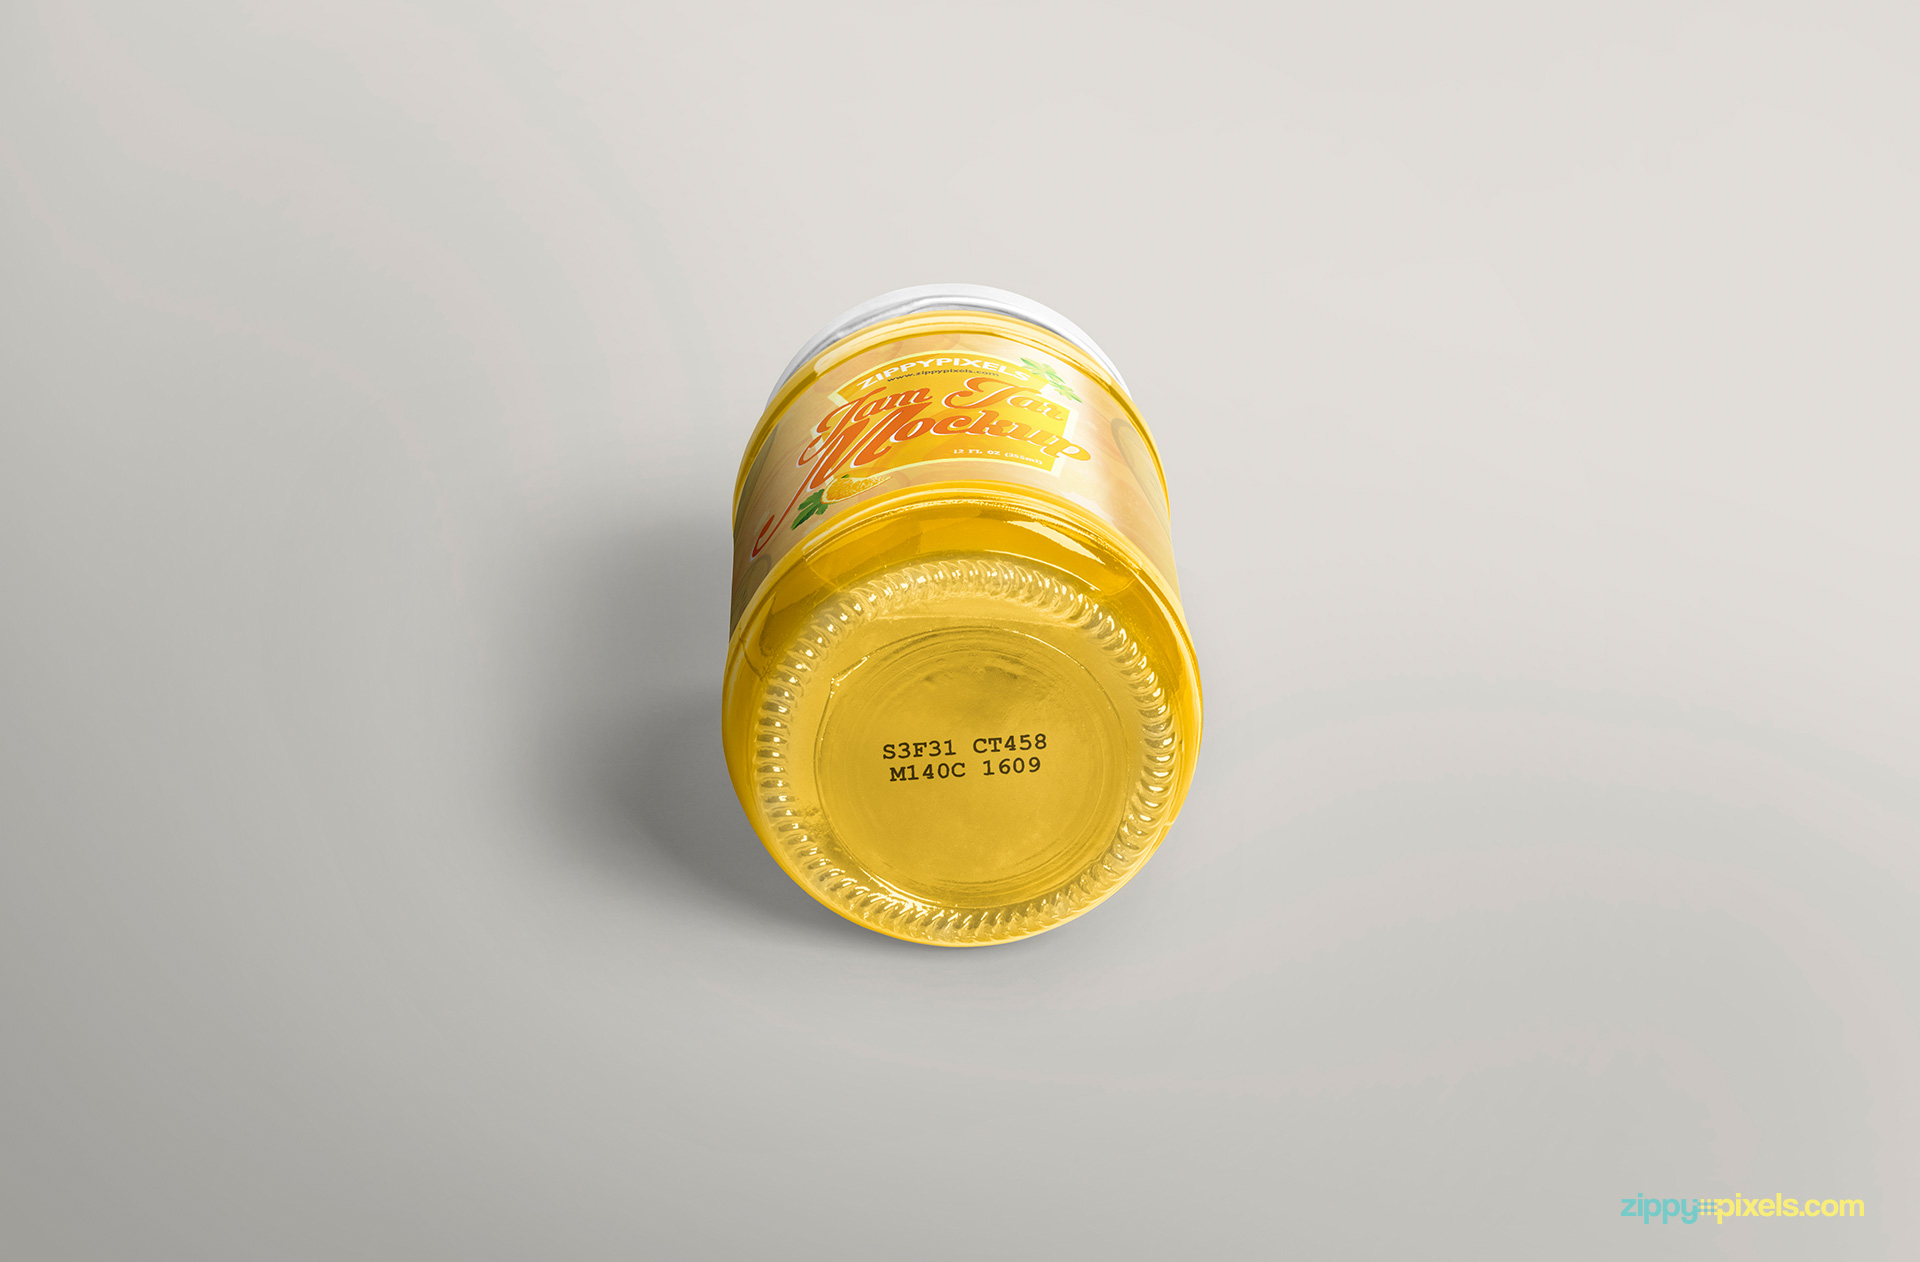 jam-jar-mockup-printing-on-bottom